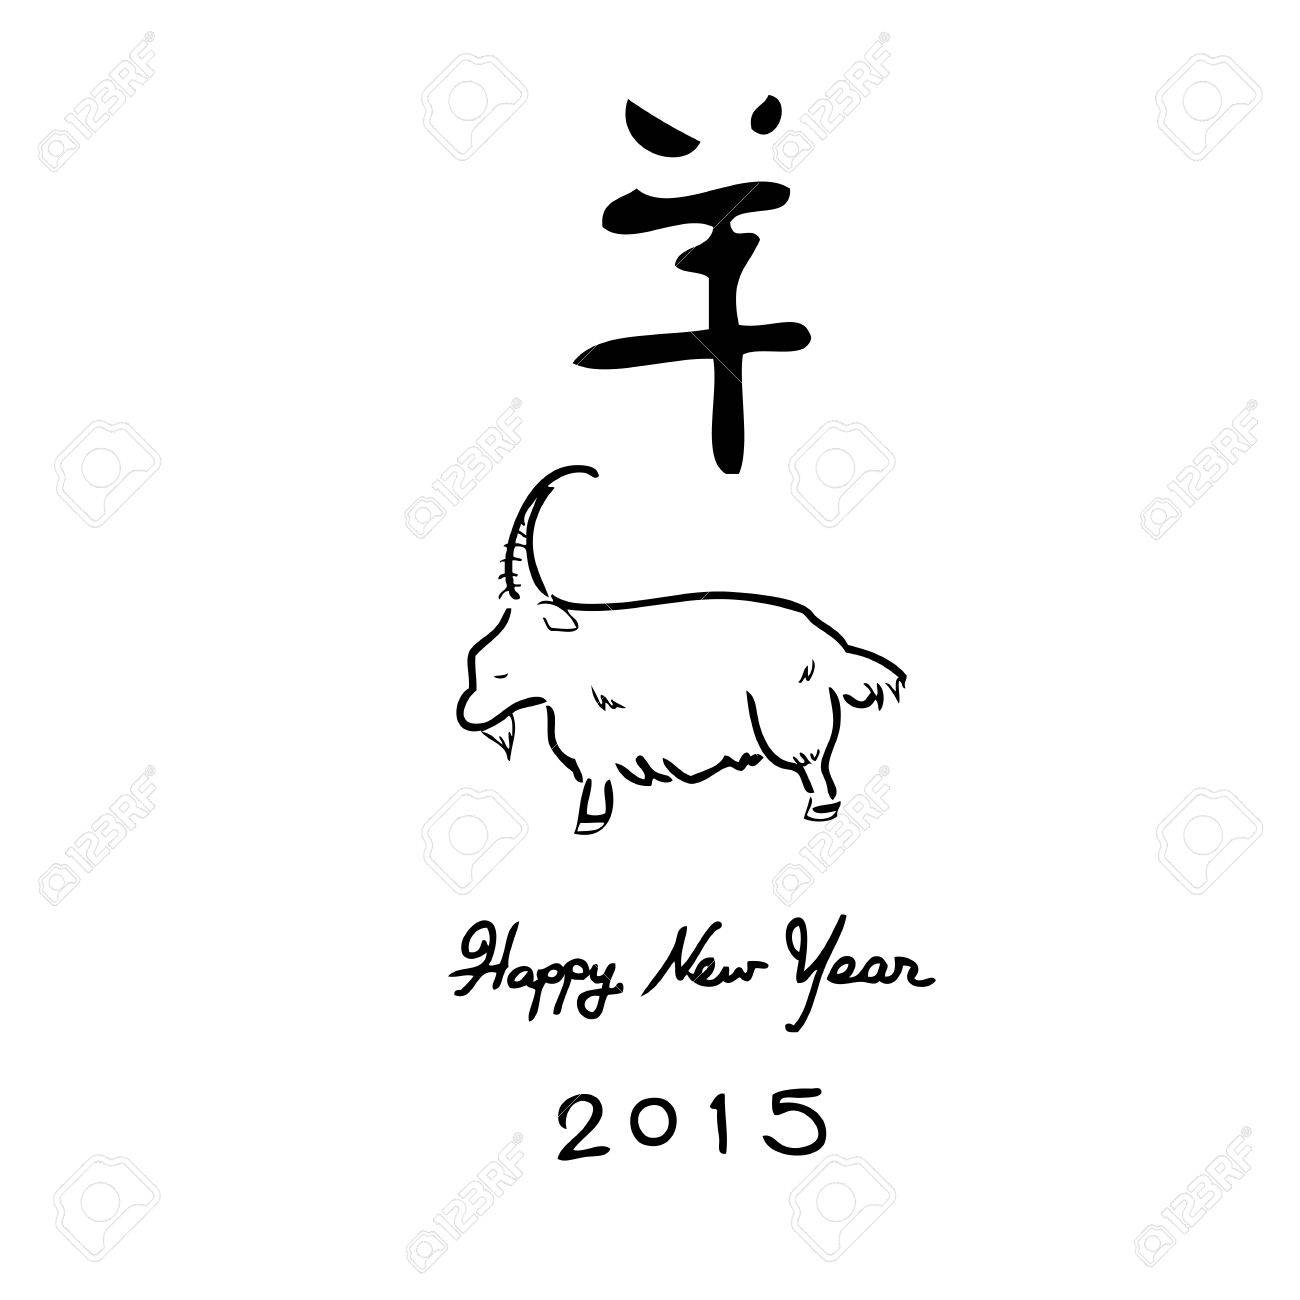 goat happy new year 2015 chinese brush drawing stock vector 34568155